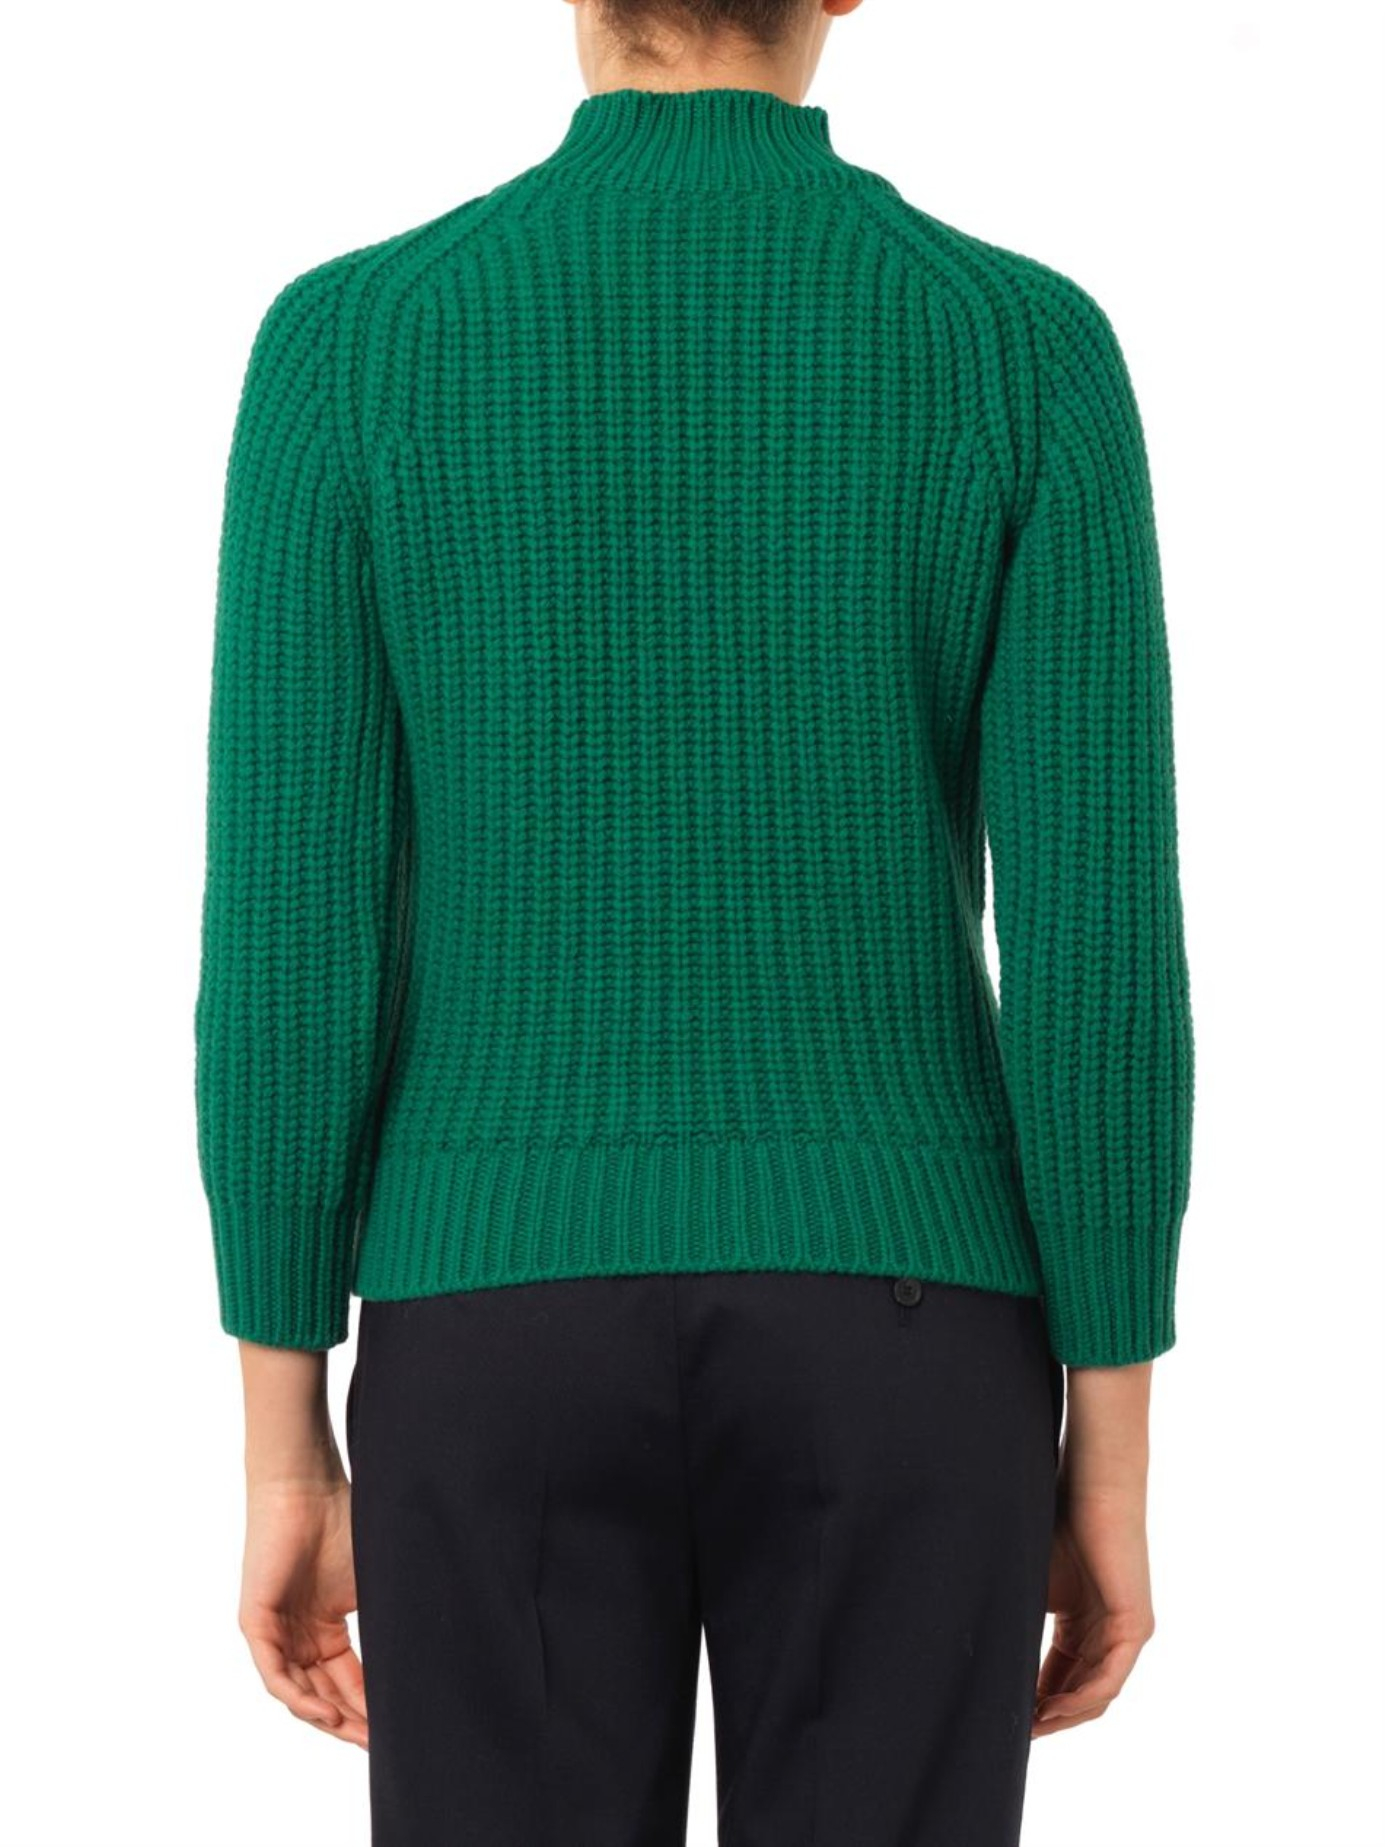 Maison kitsuné Ribbed-knit Wool Sweater in Green | Lyst